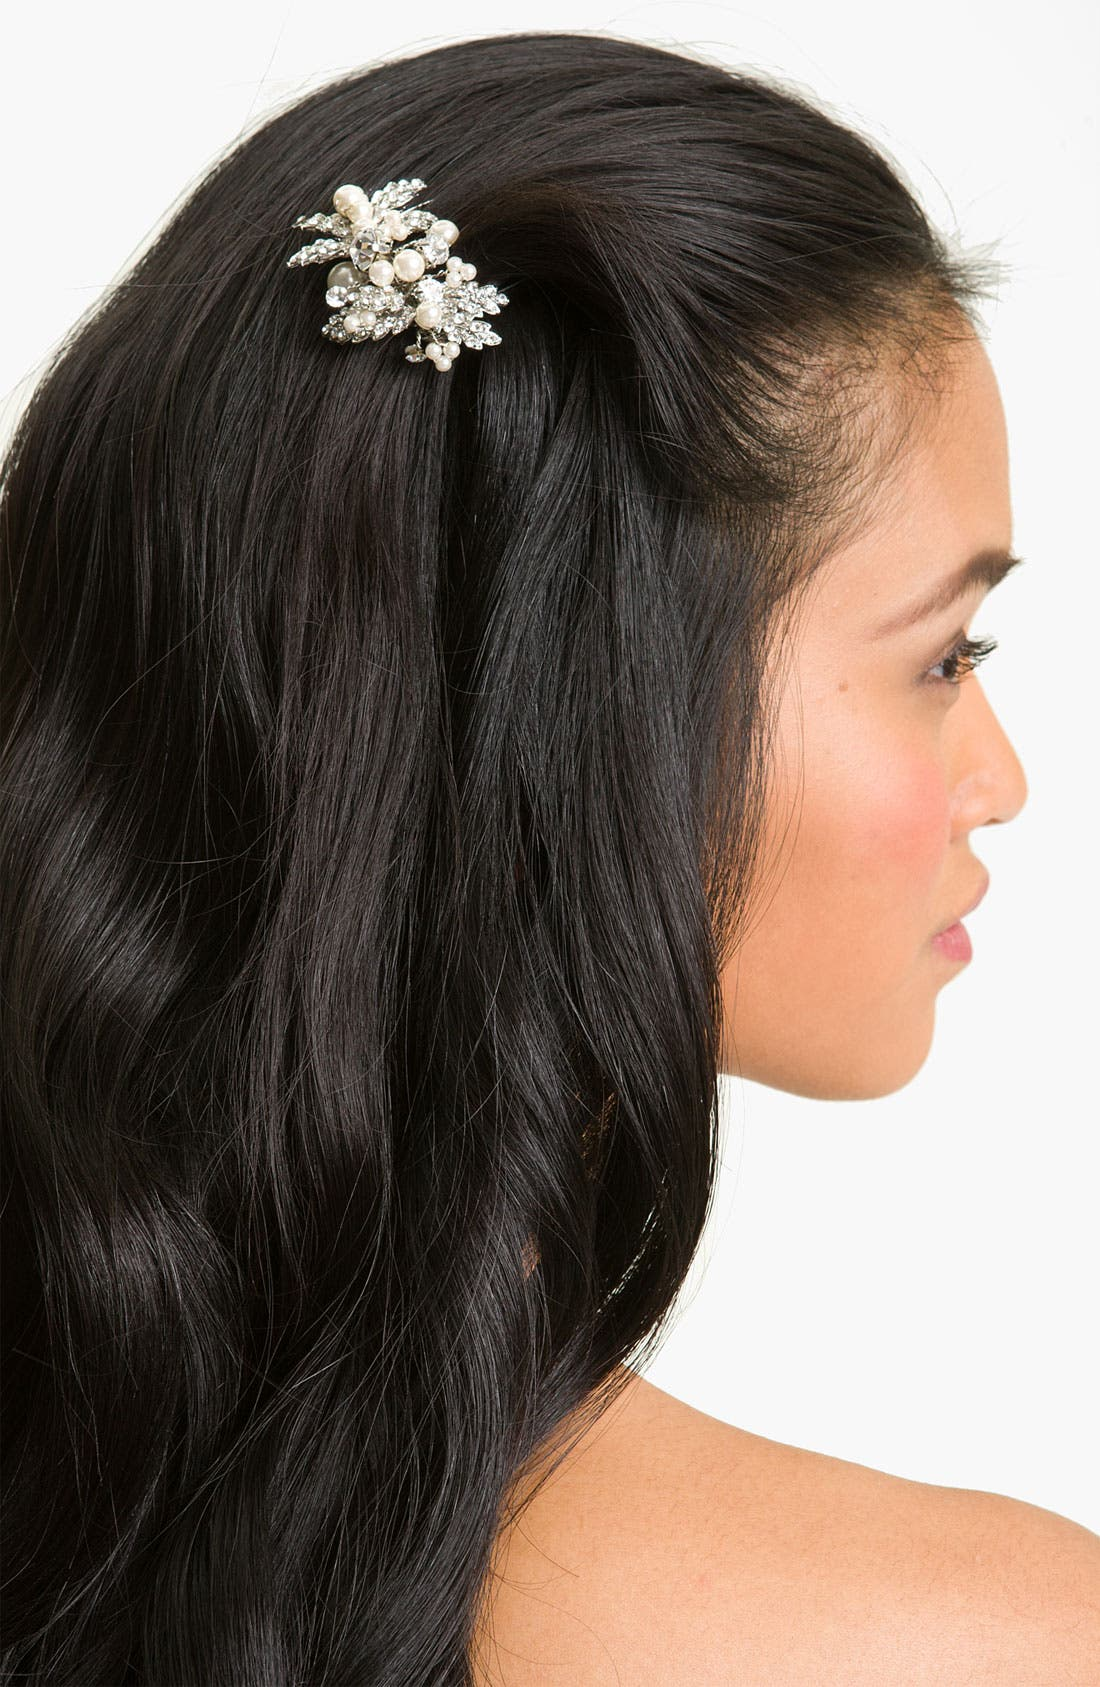 Main Image - Nina 'Briella' Hair Comb